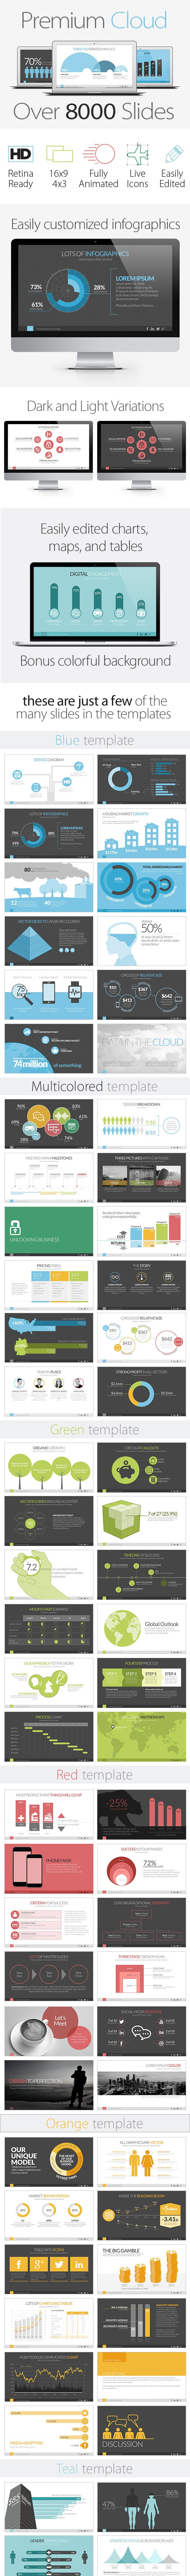 Premium Cloud - Business PowerPoint Templates